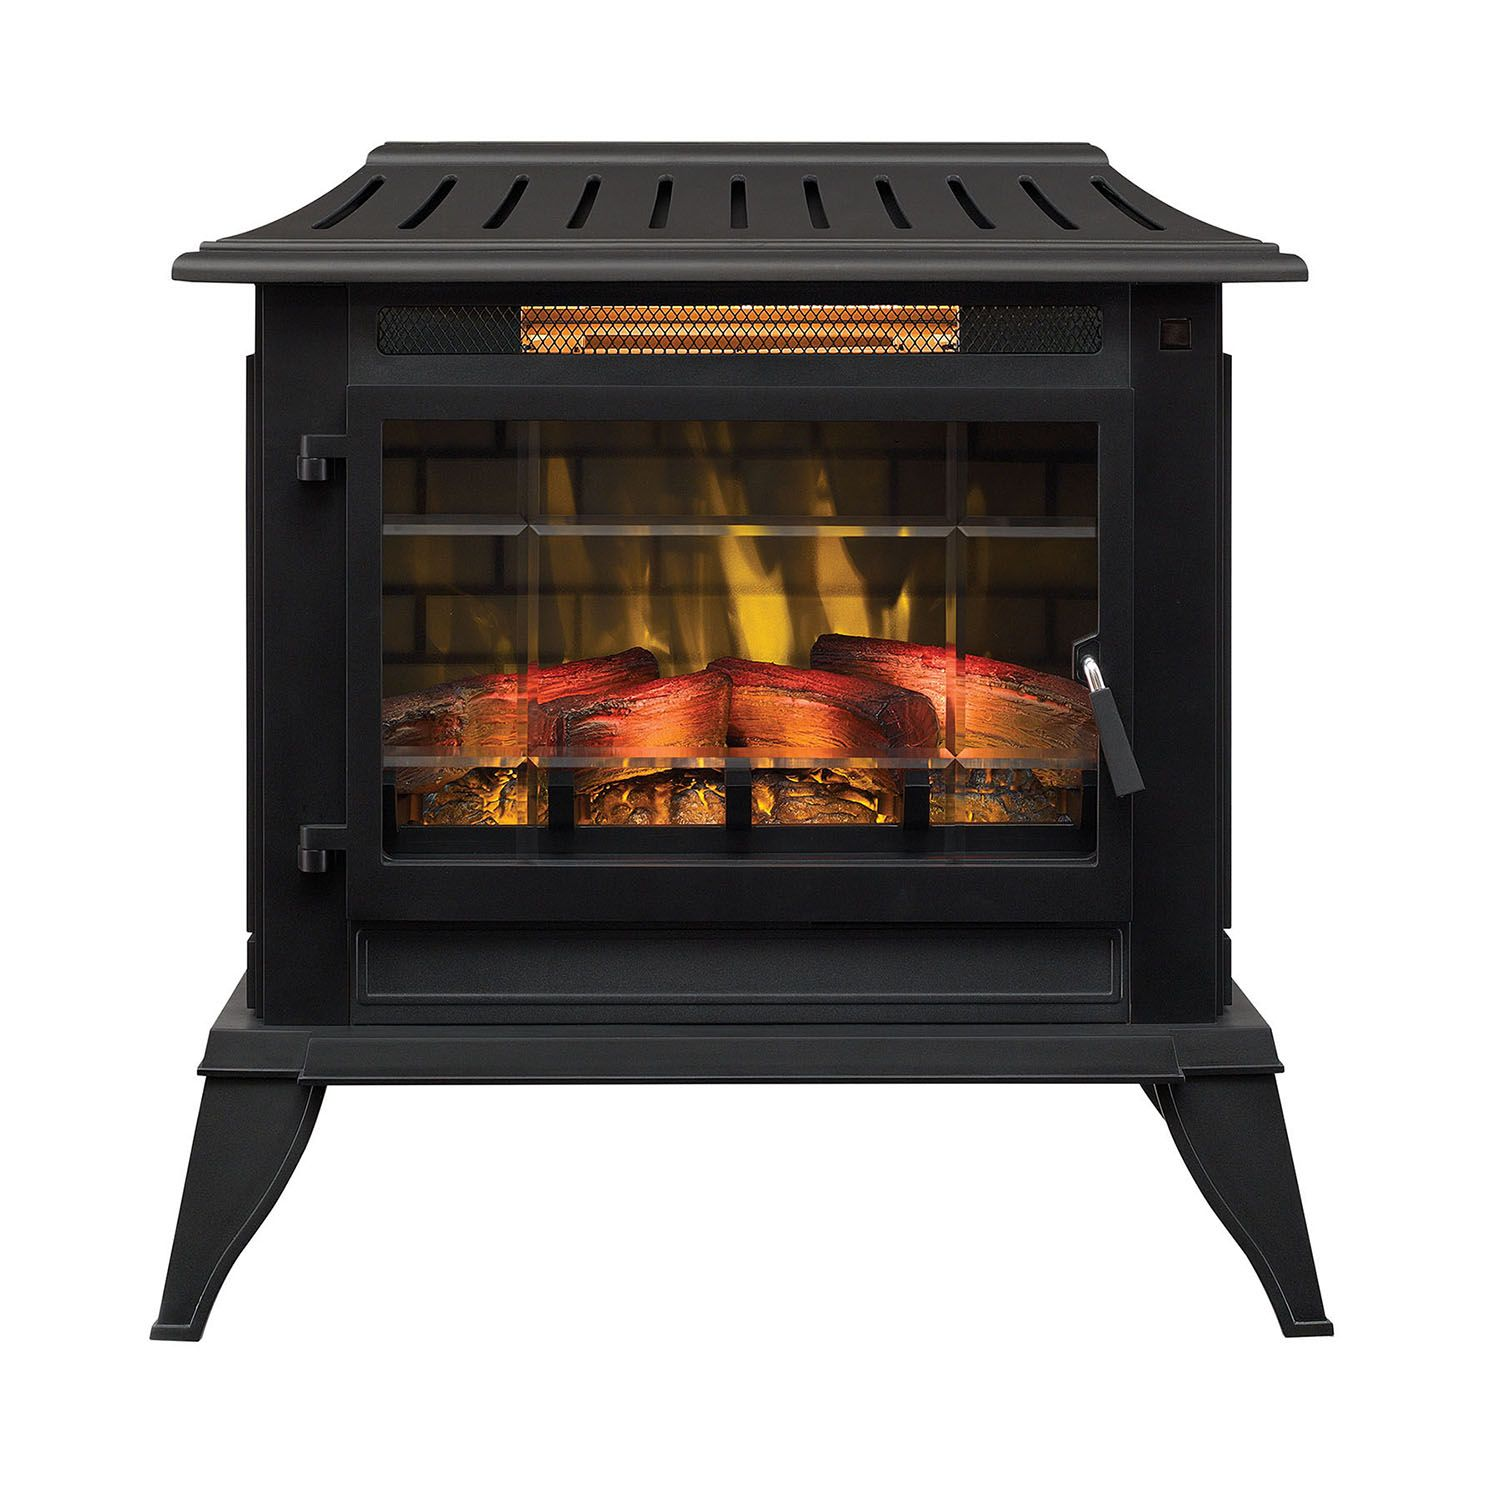 Twin-Star International Infragen 3D Electric Fireplace Stove with Safer Plug